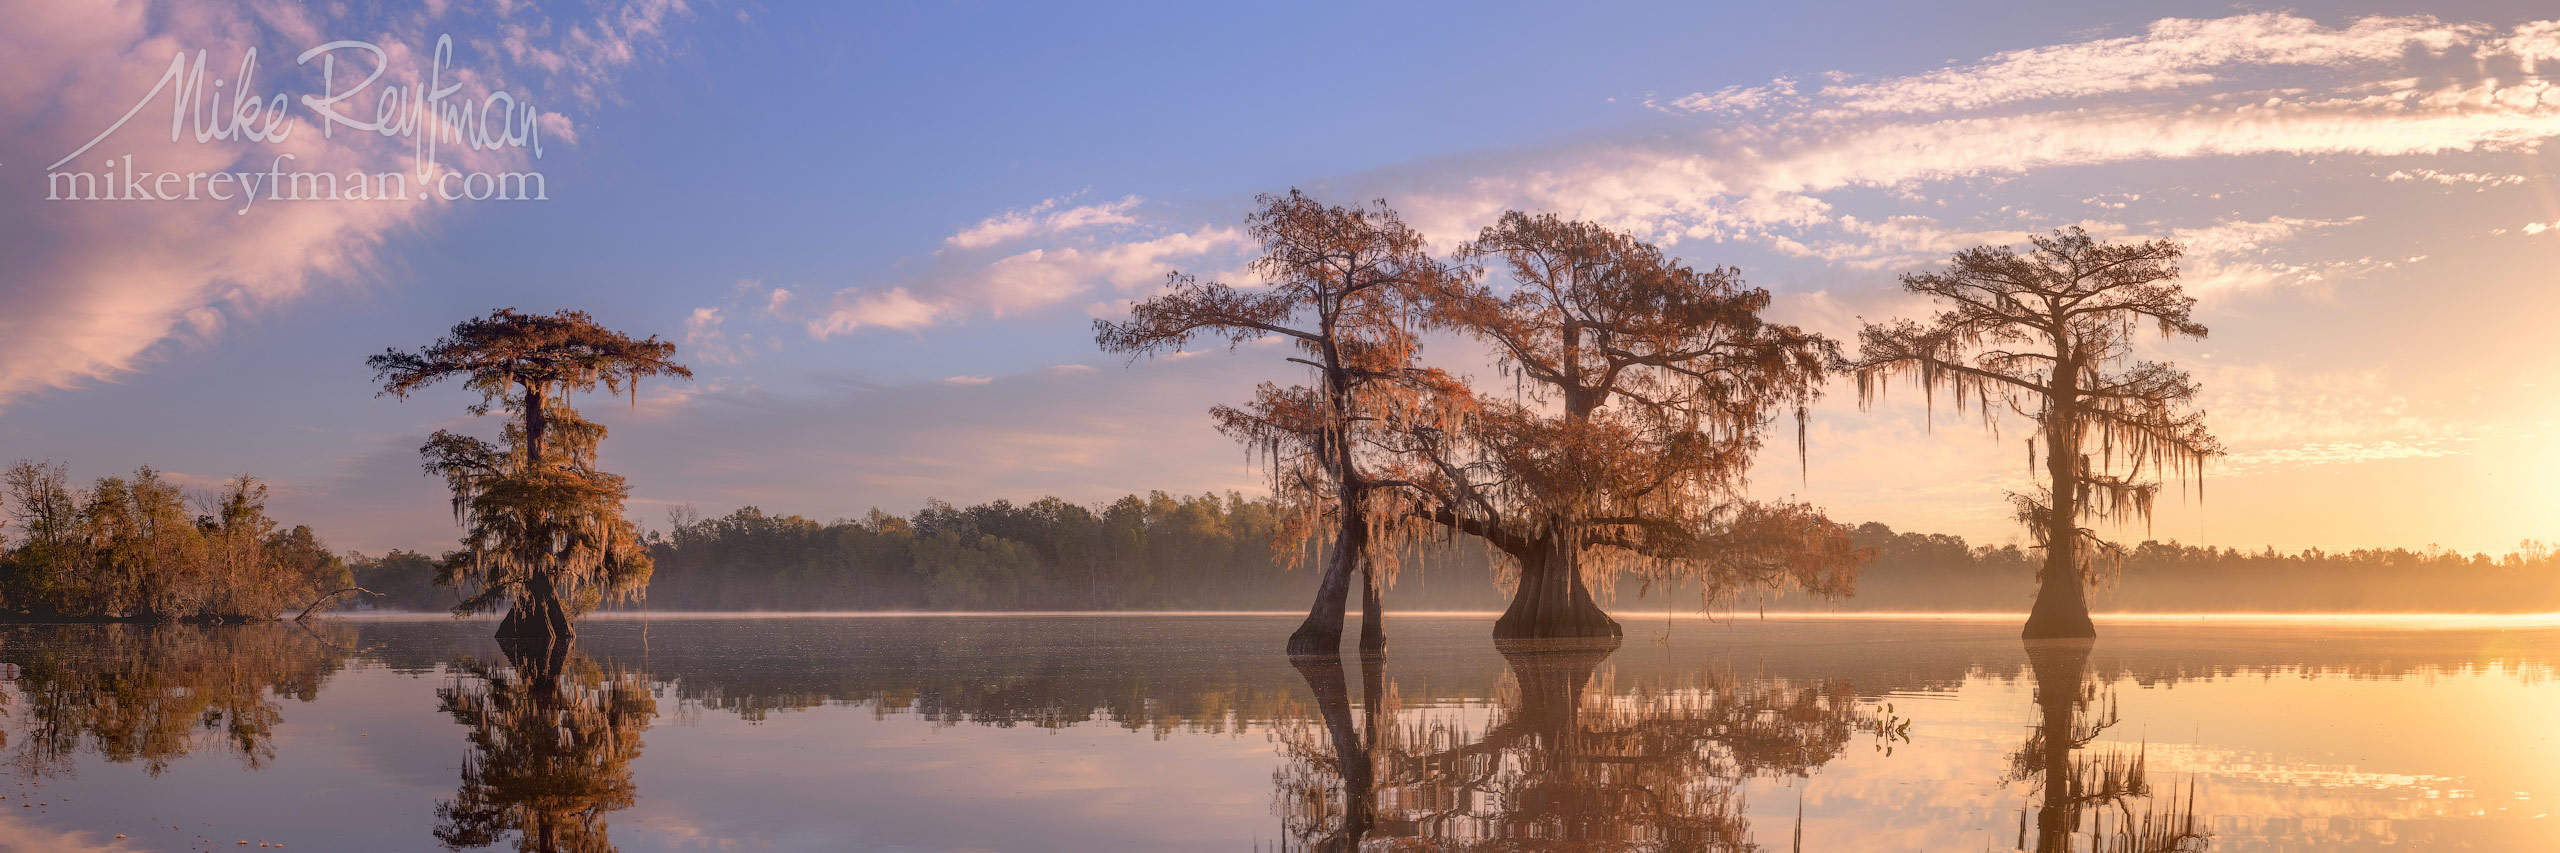 Bald Cypress trees covered in Spanish Moss at sunrise. Lake Fausse, Louisiana, US 078-LT1-50A4424_Pano-3x1.jpg - Bold Cypress and Tupelo Trees in the swamps of Atchafalaya River Basin. Caddo, Martin and Fousse Lakes. Texas/Louisiana, USA. - Mike Reyfman Photography